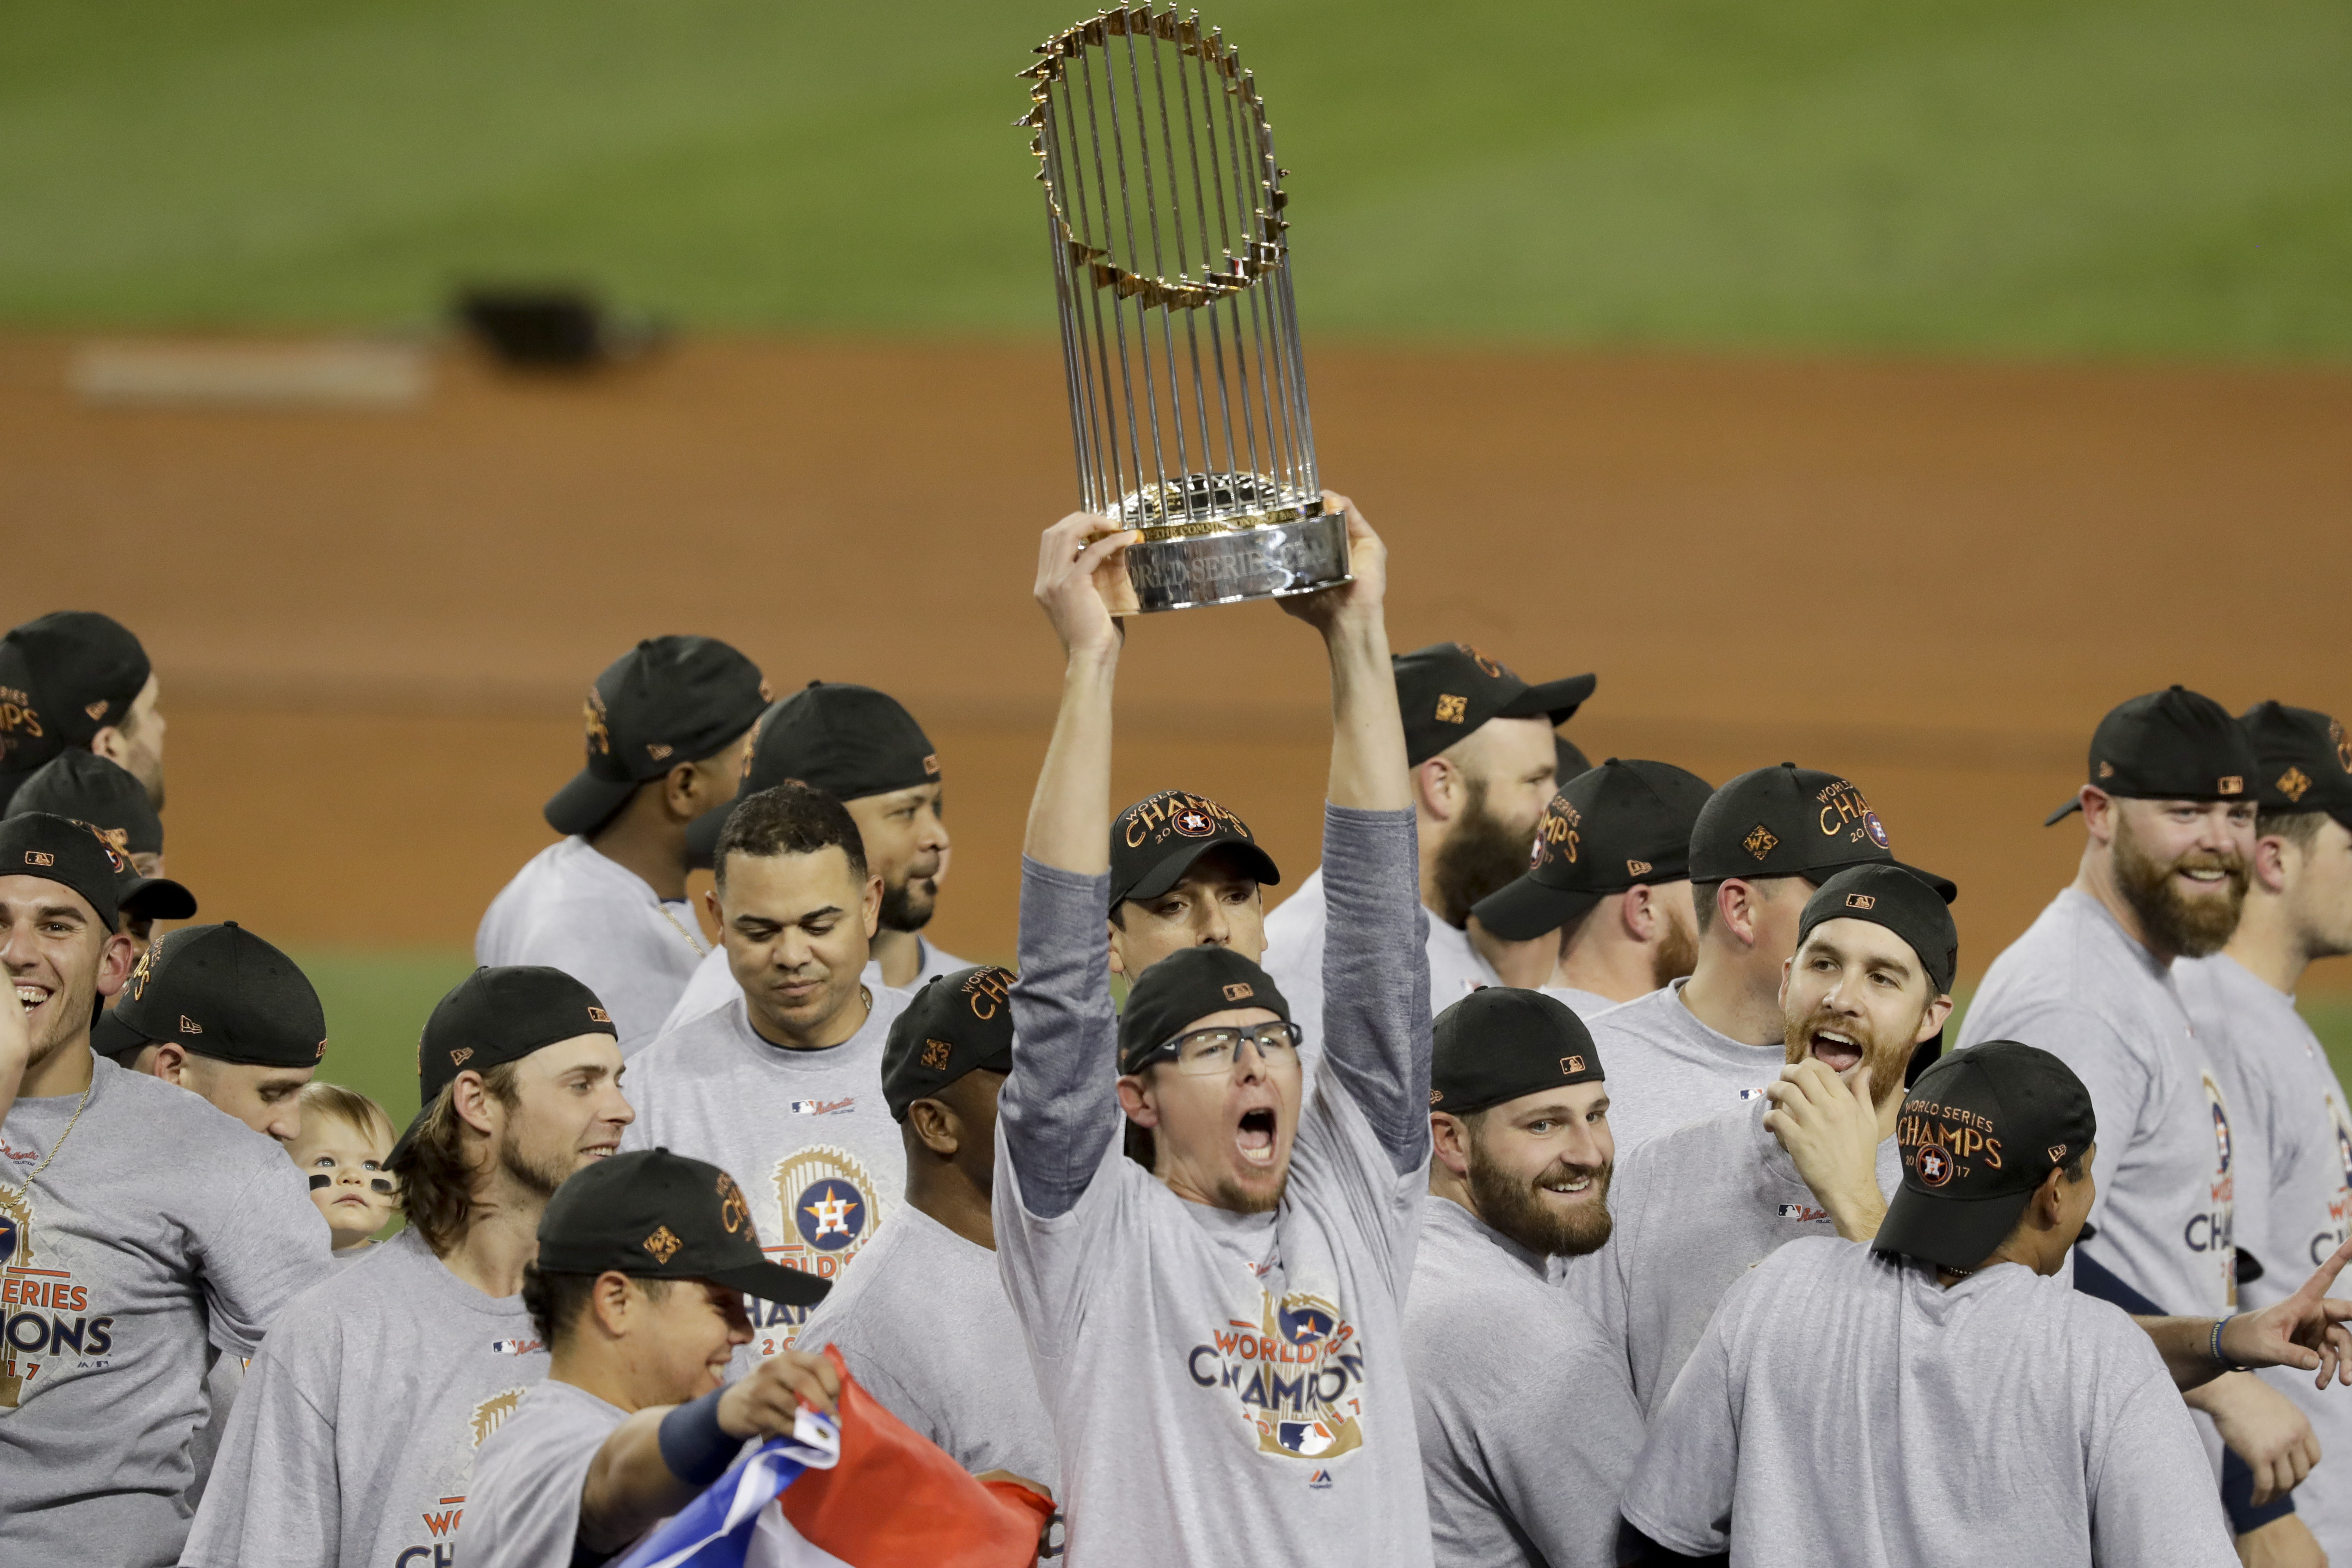 The Houston Astros celebrate with the trophy after their win against the Los Angeles Dodgers in Game 7 of the World Series Wednesday, Nov. 1, 2017, in Los Angeles. The Astros won 5-1 to win the series 4-3. (AP Photo/Alex Gallardo)